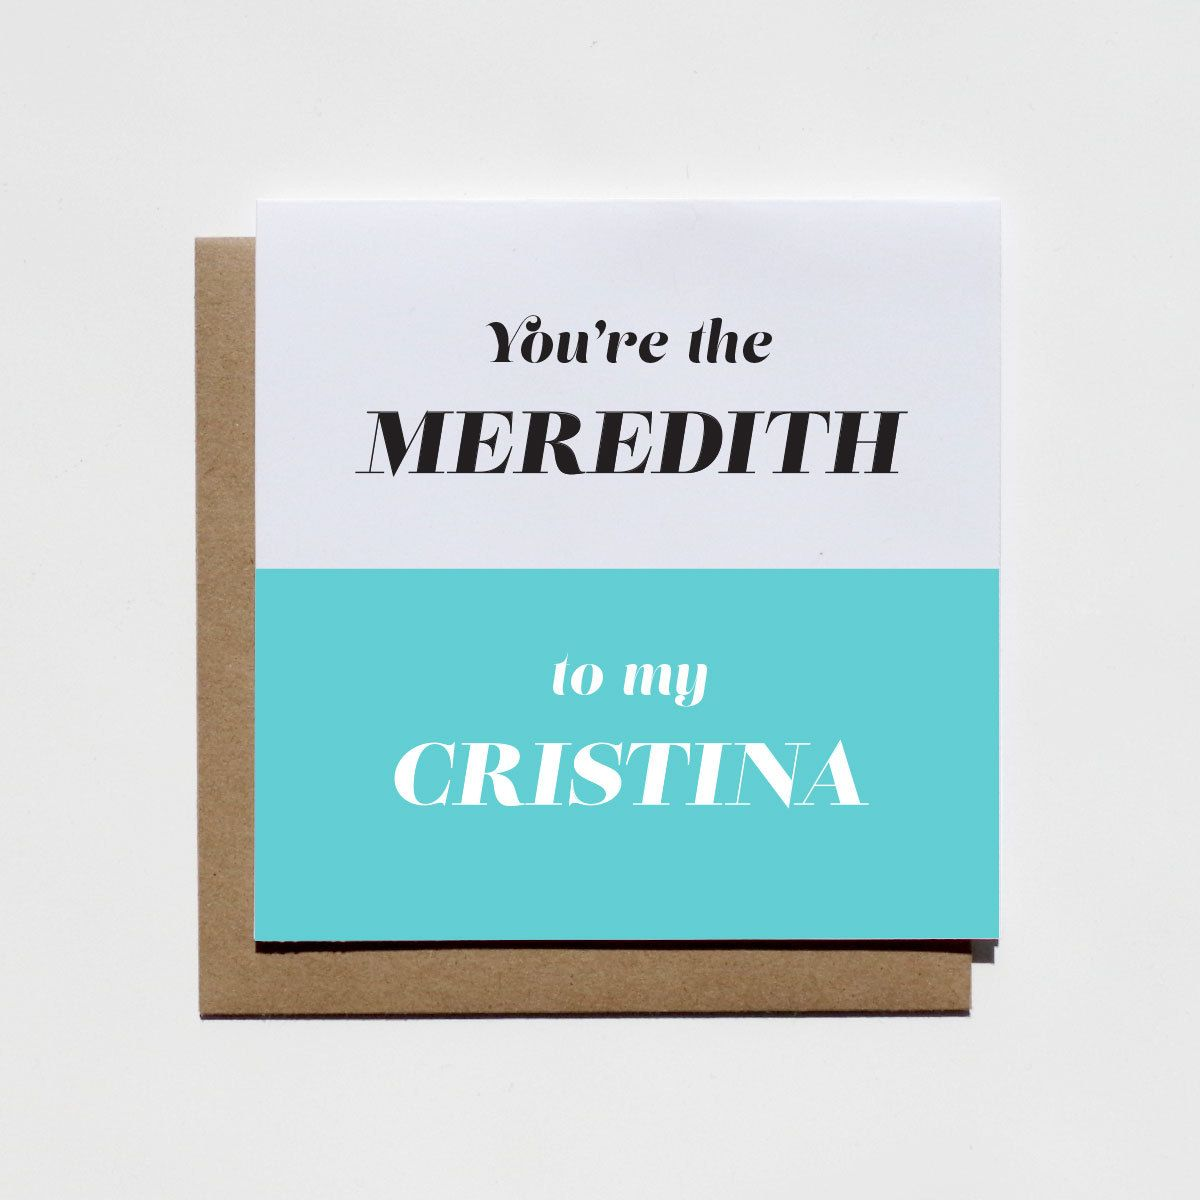 Meredith to my cristina card card for friend greeting card card meredith to my cristina card card for friend greeting card card for best friend funny birthday kristyandbryce Image collections